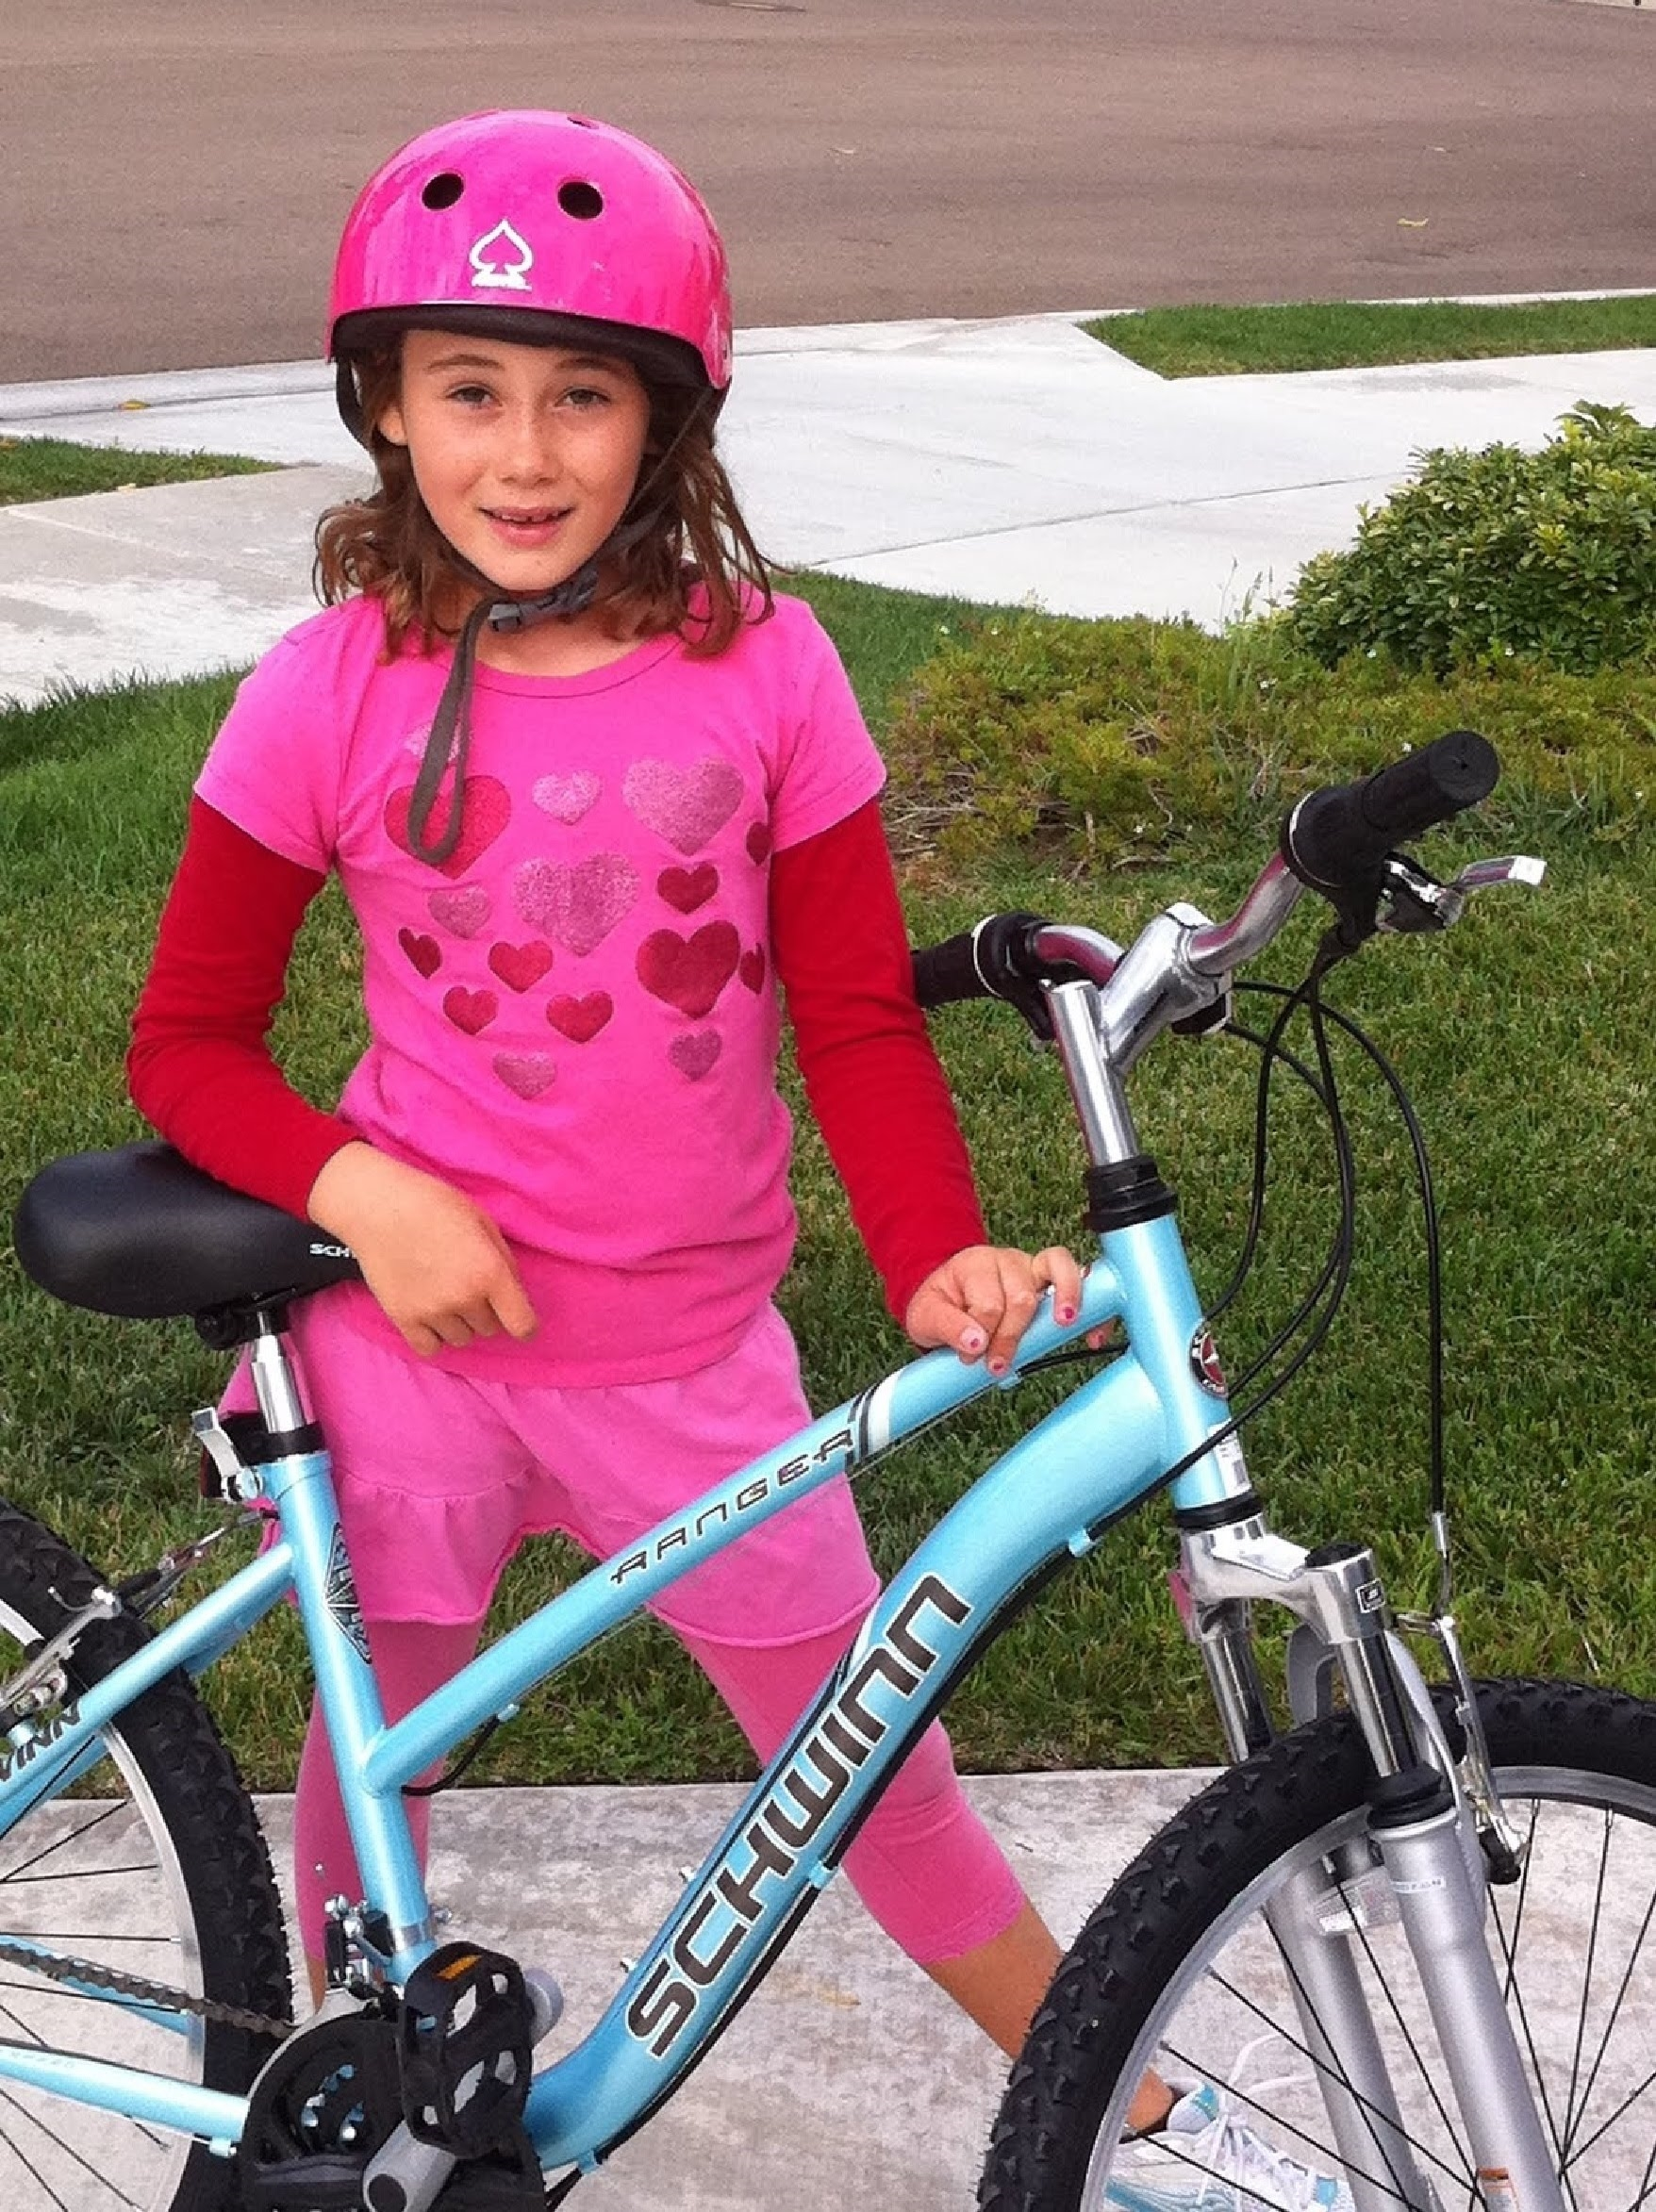 Capri With Her Bike